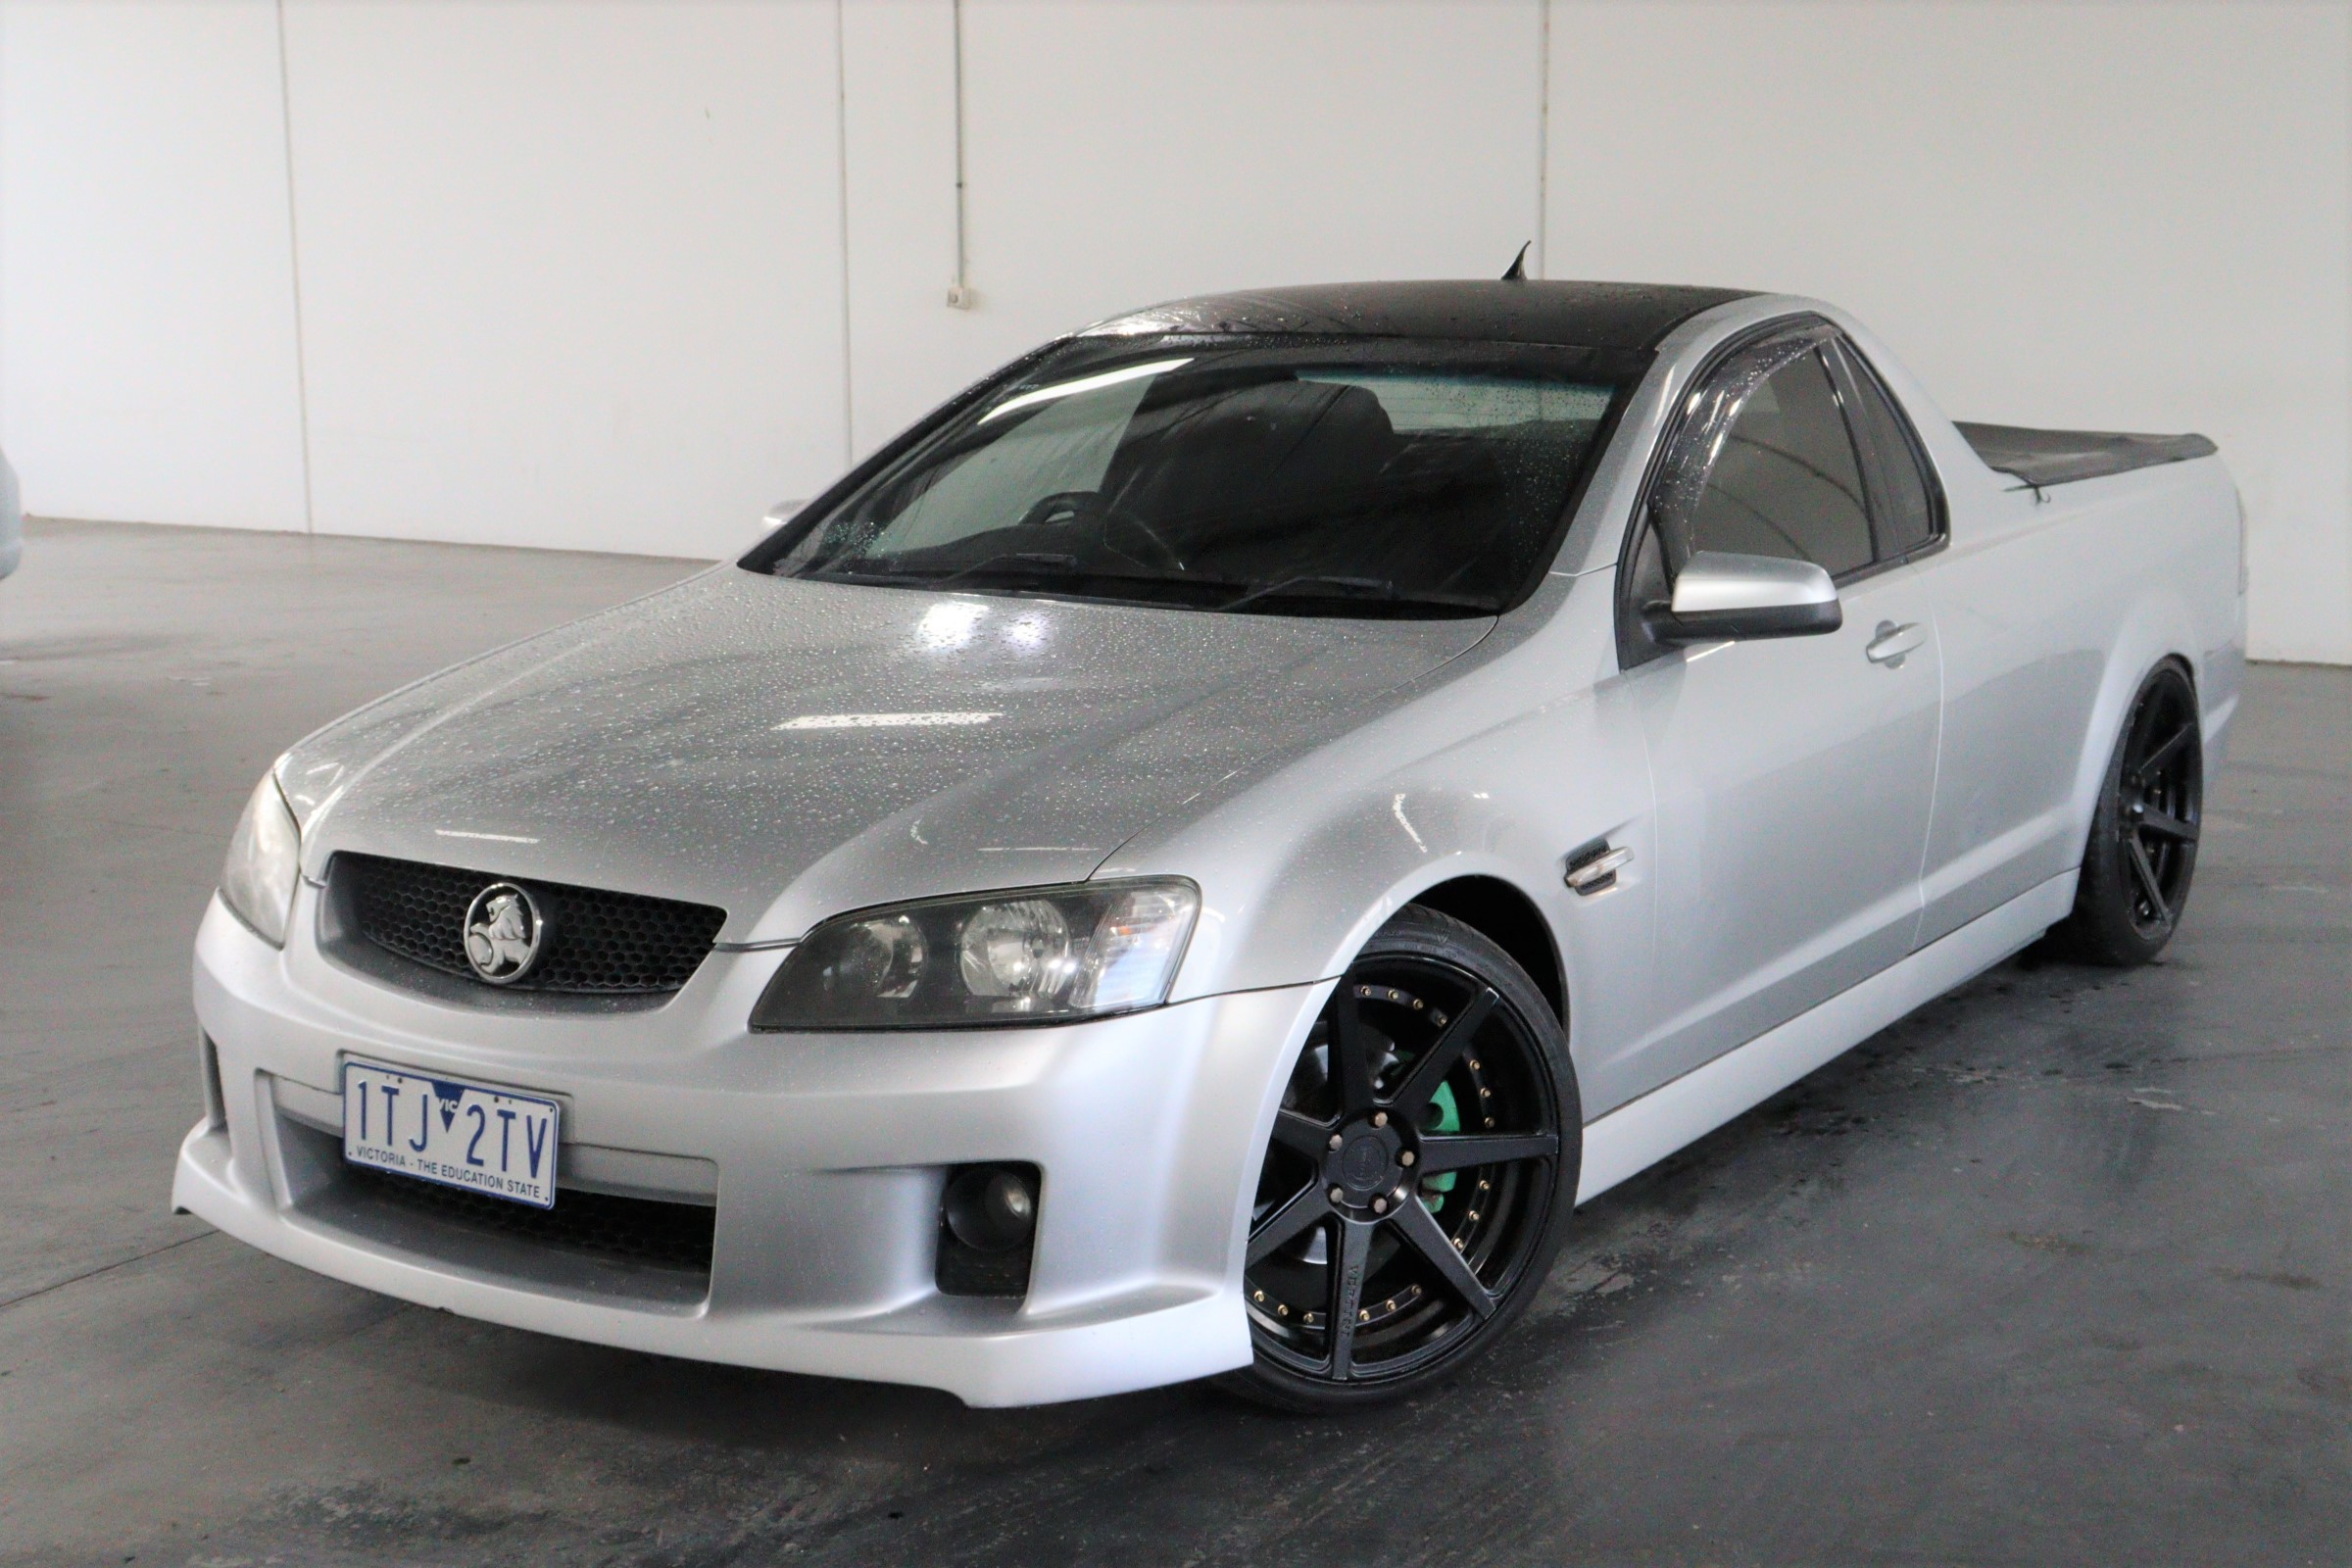 2009 Holden Commodore SV6 VE Automatic Ute